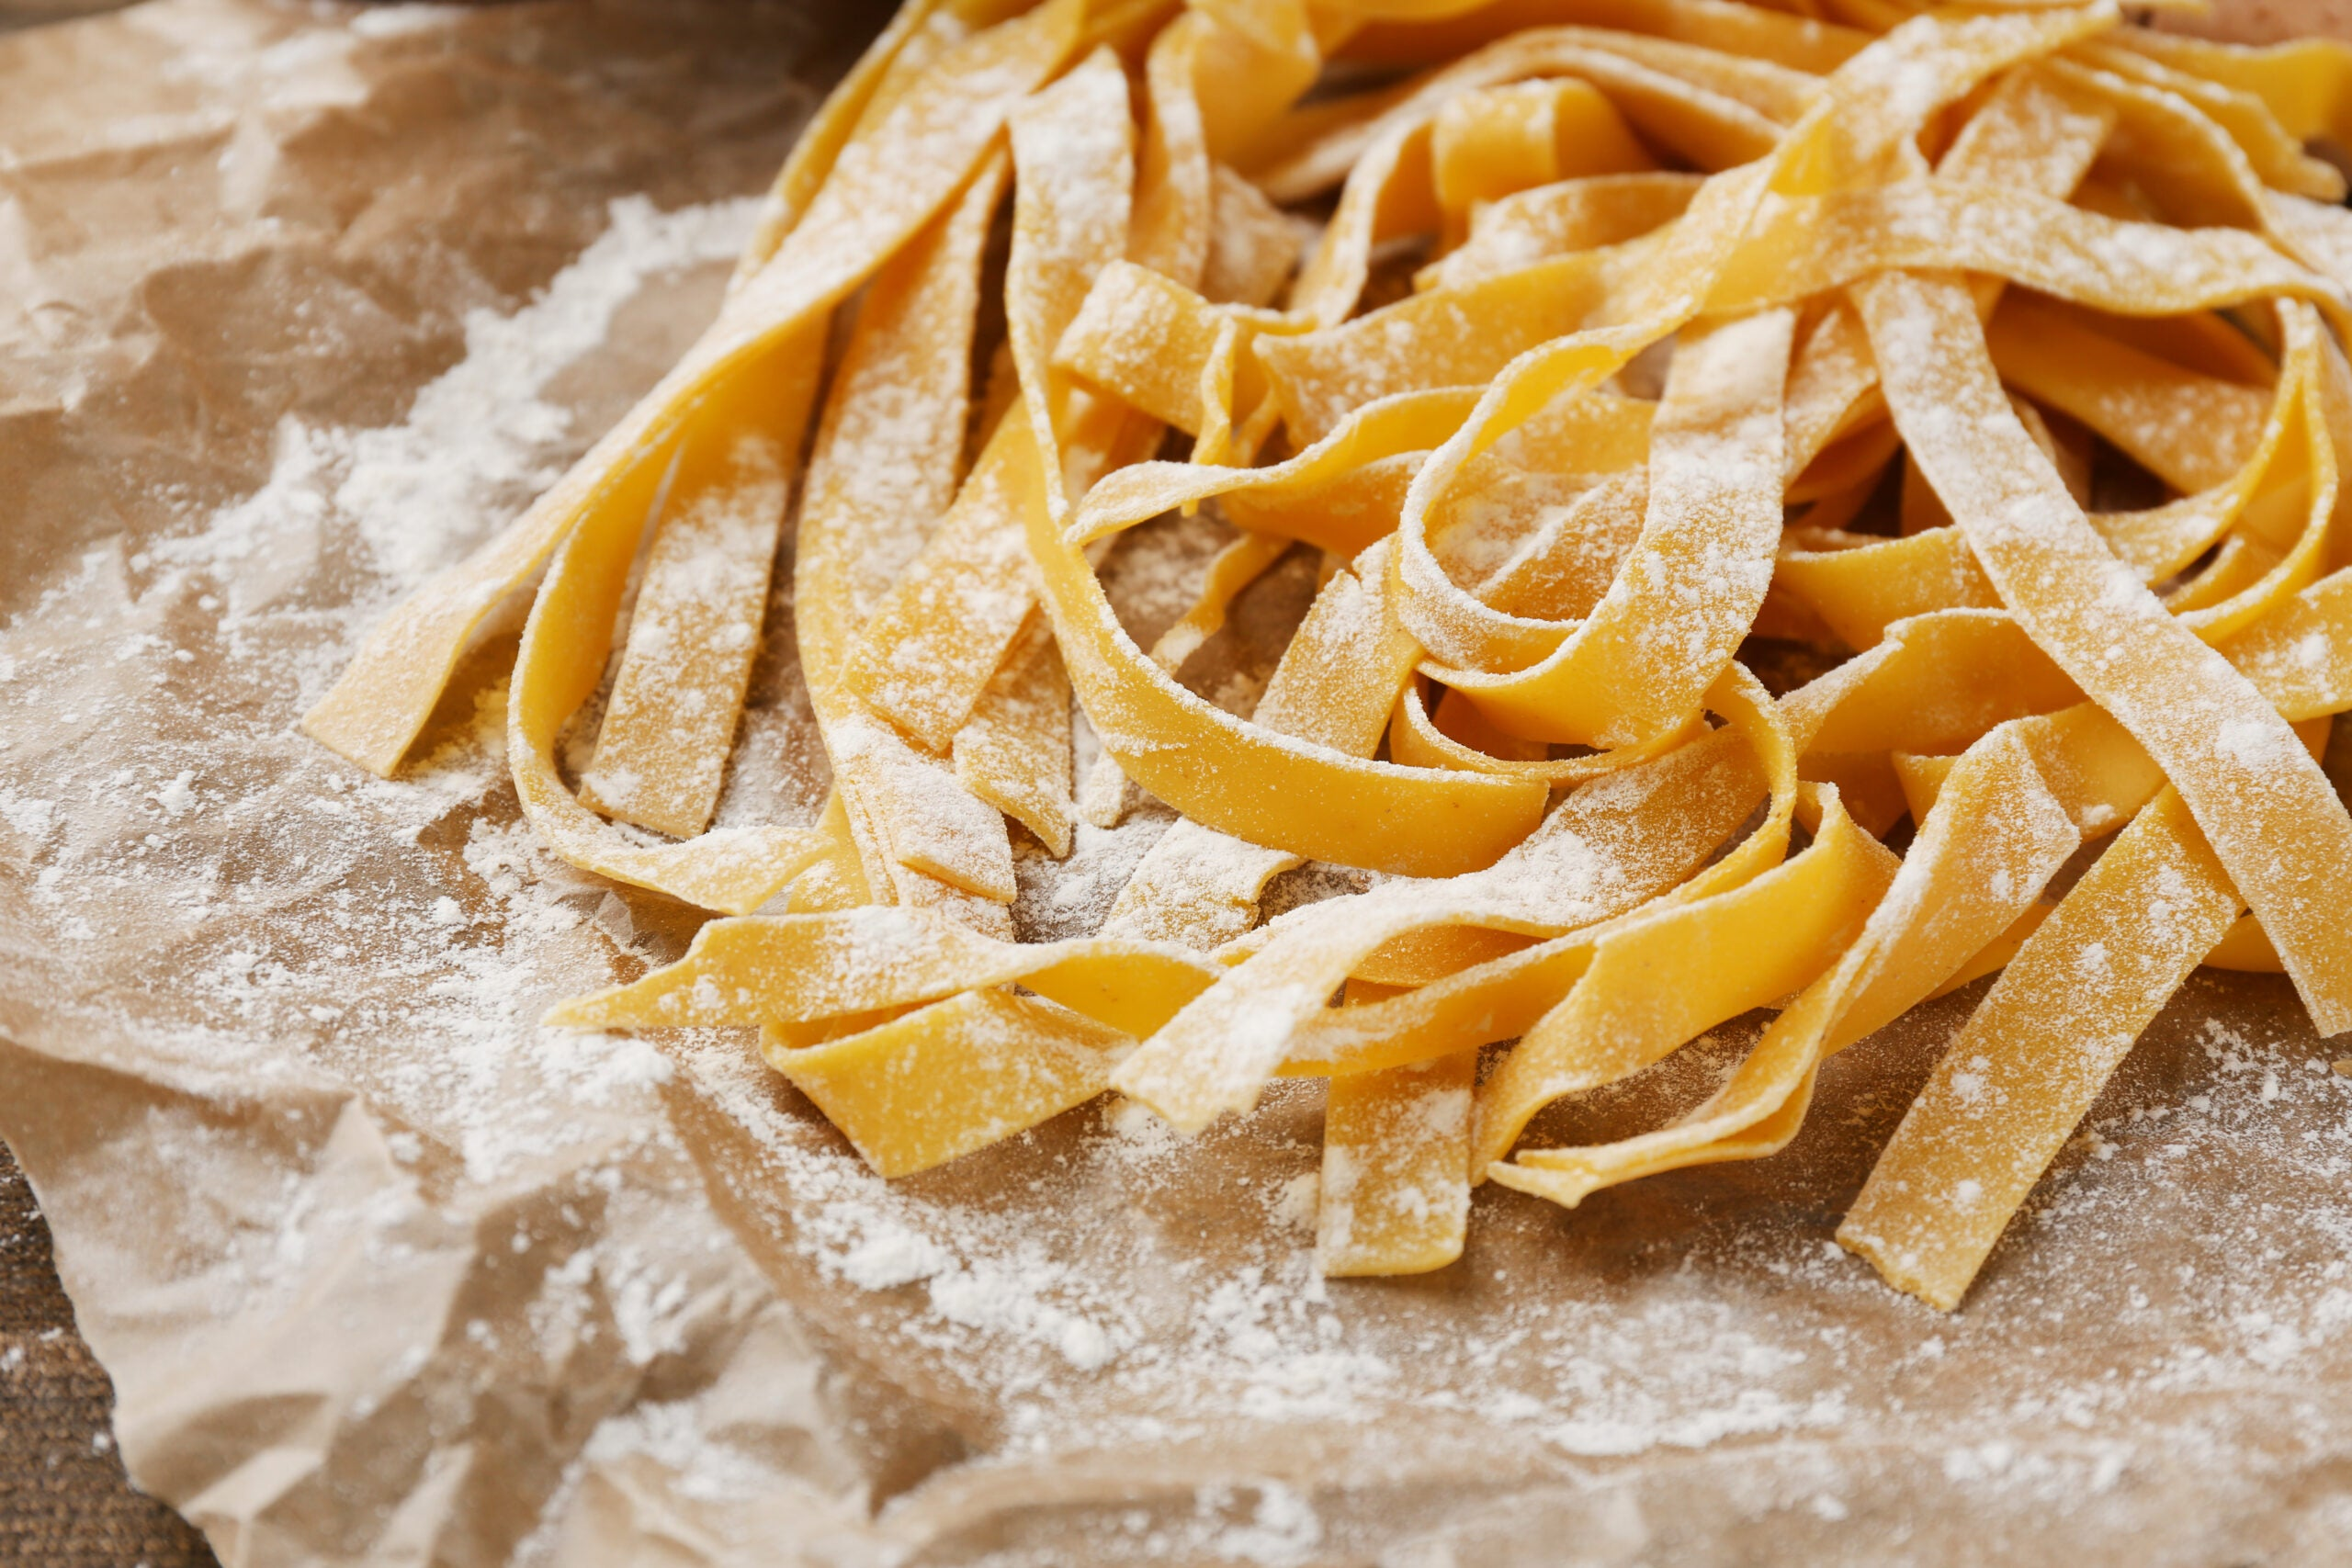 To protect the world's pasta, scientists peered inside fettuccine's DNA